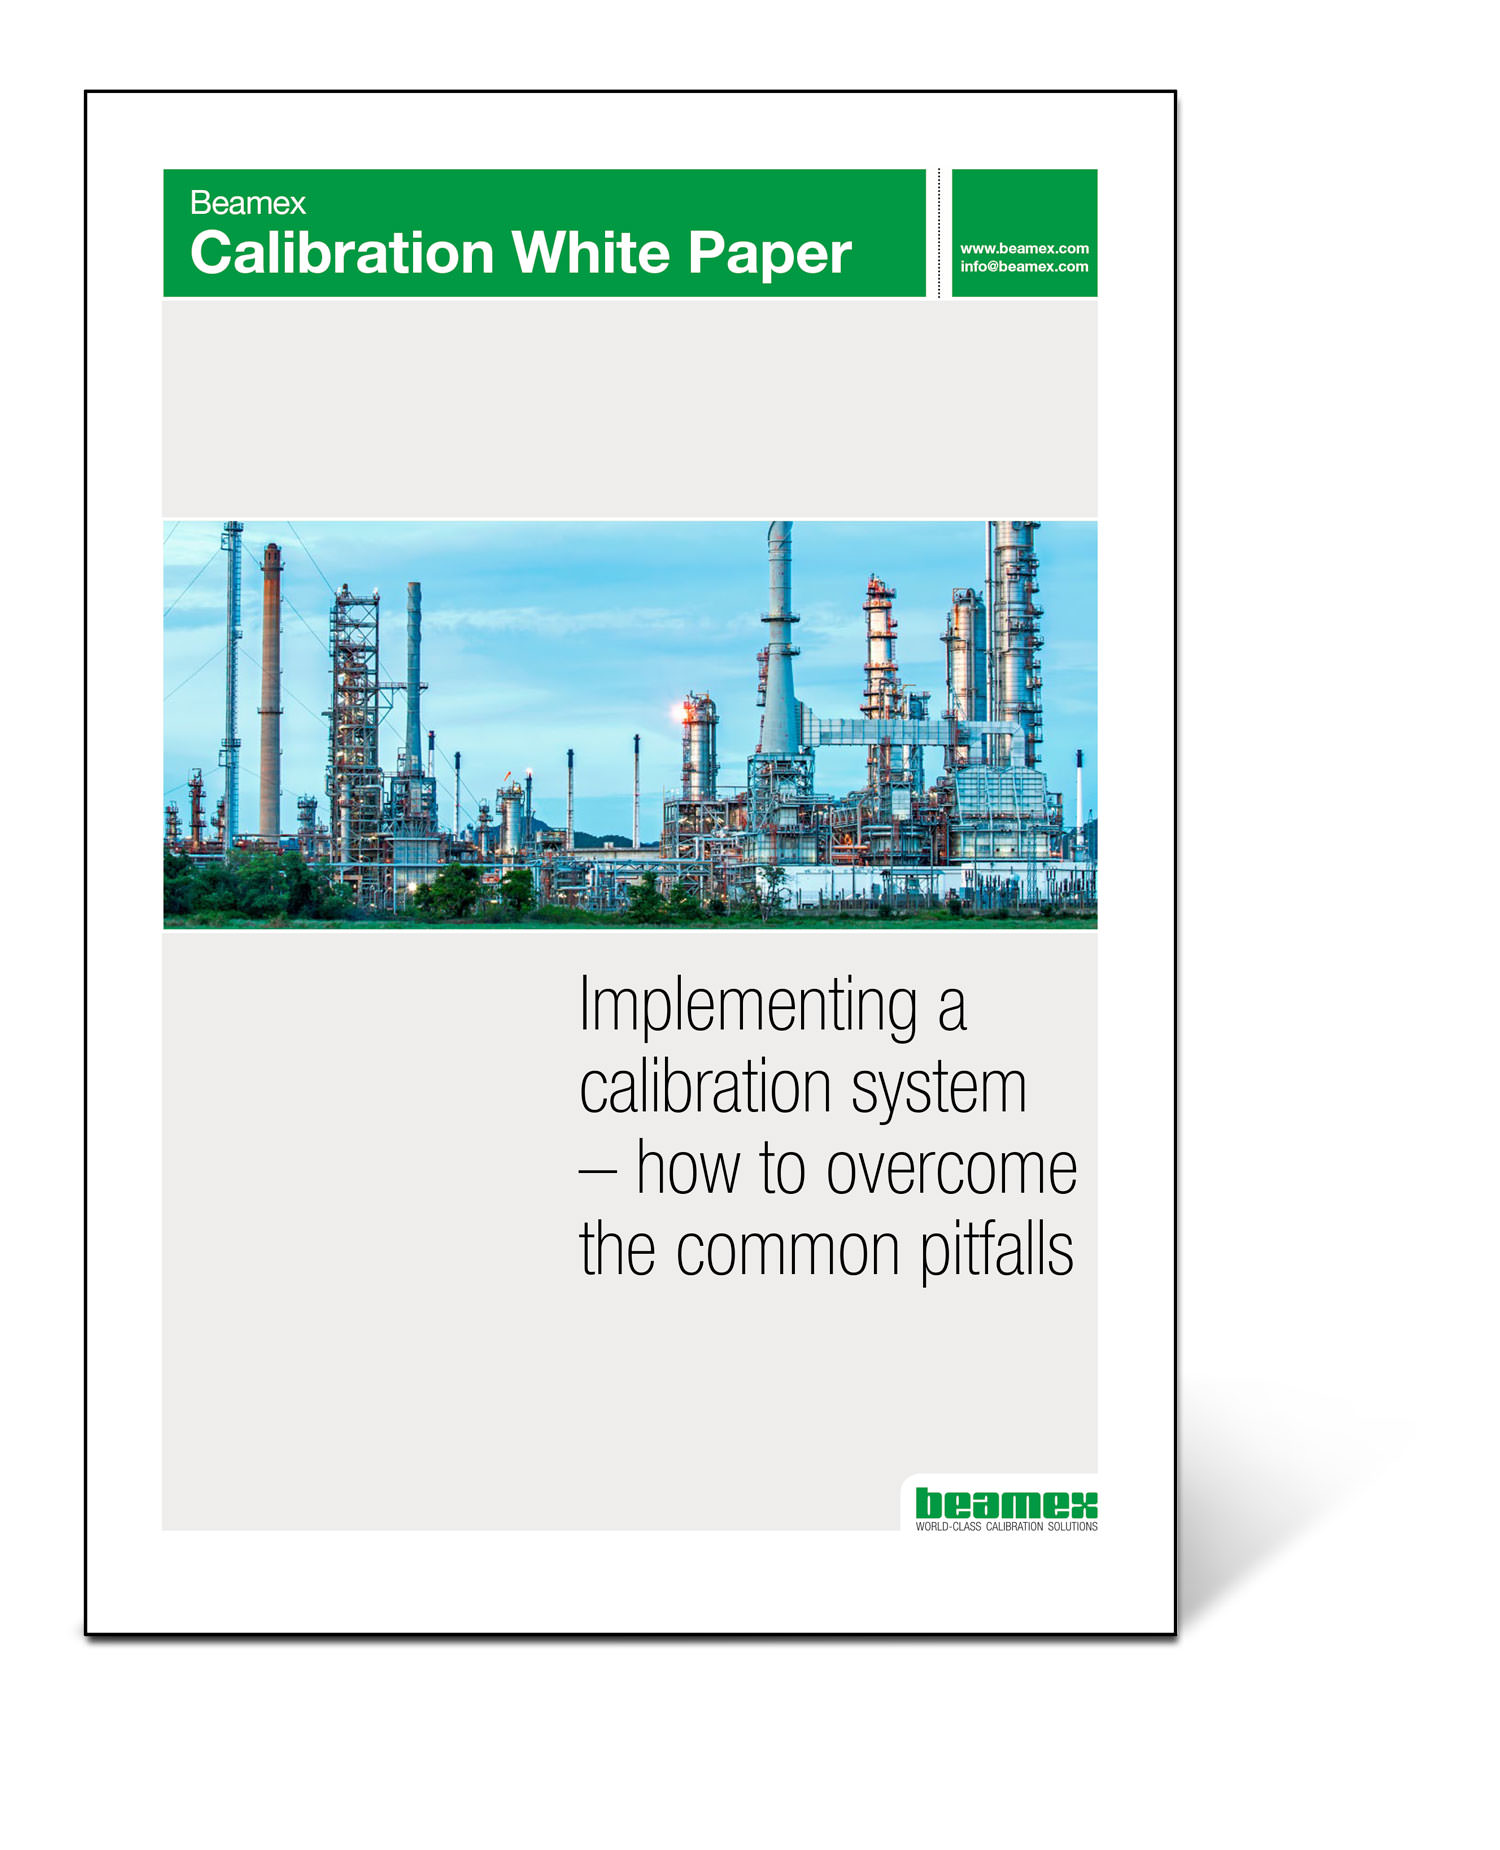 Implementing a calibration system, Beamex white paper